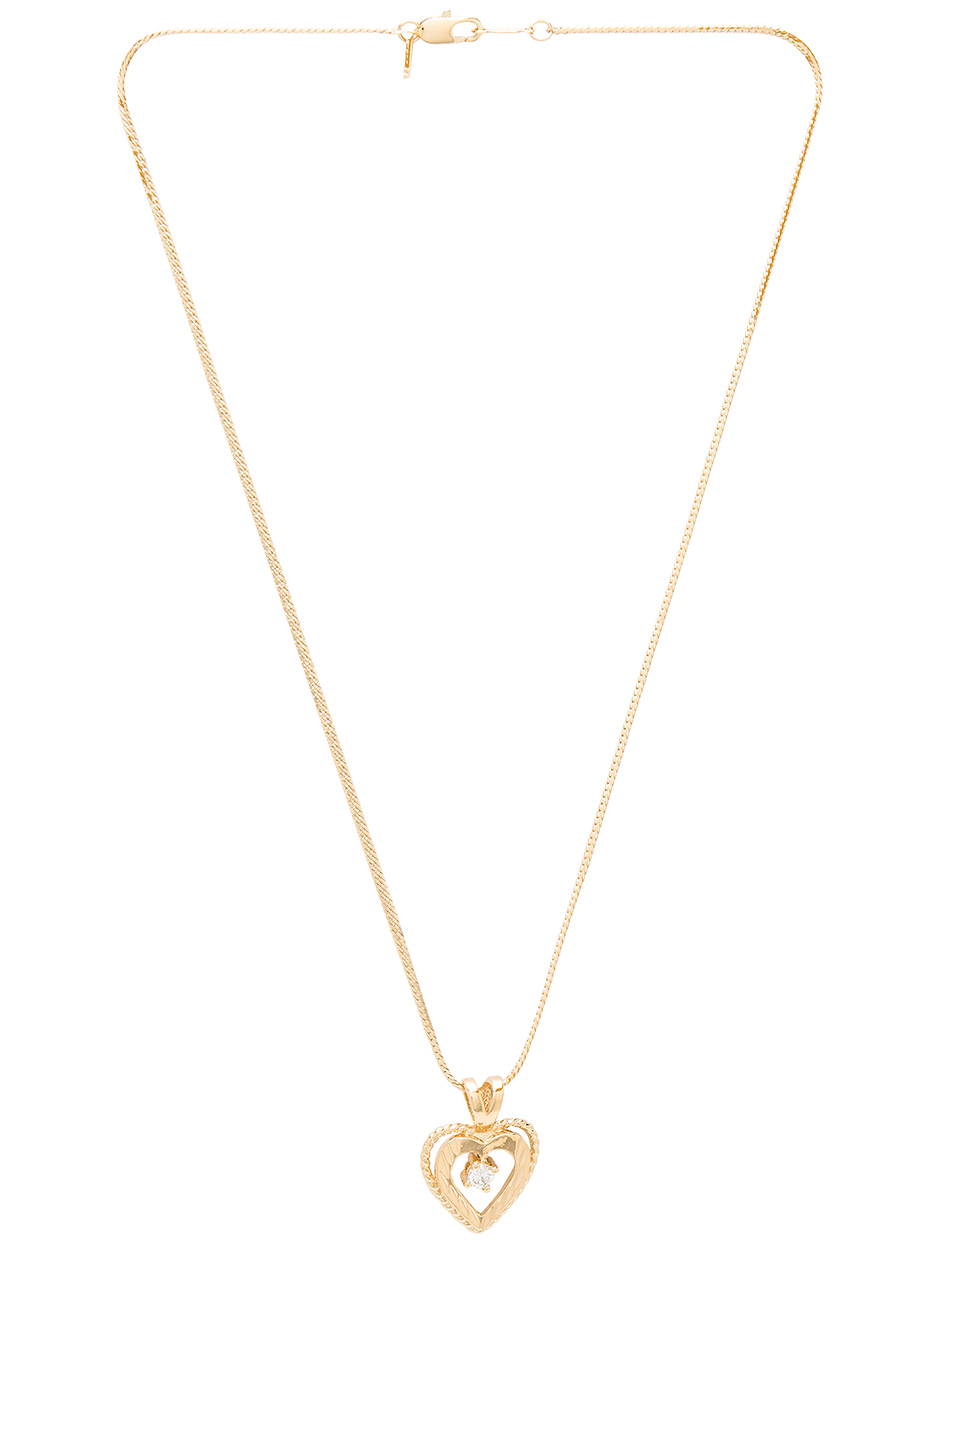 Vanessa Mooney Nora Heart & Crystal Charm Necklace in Gold